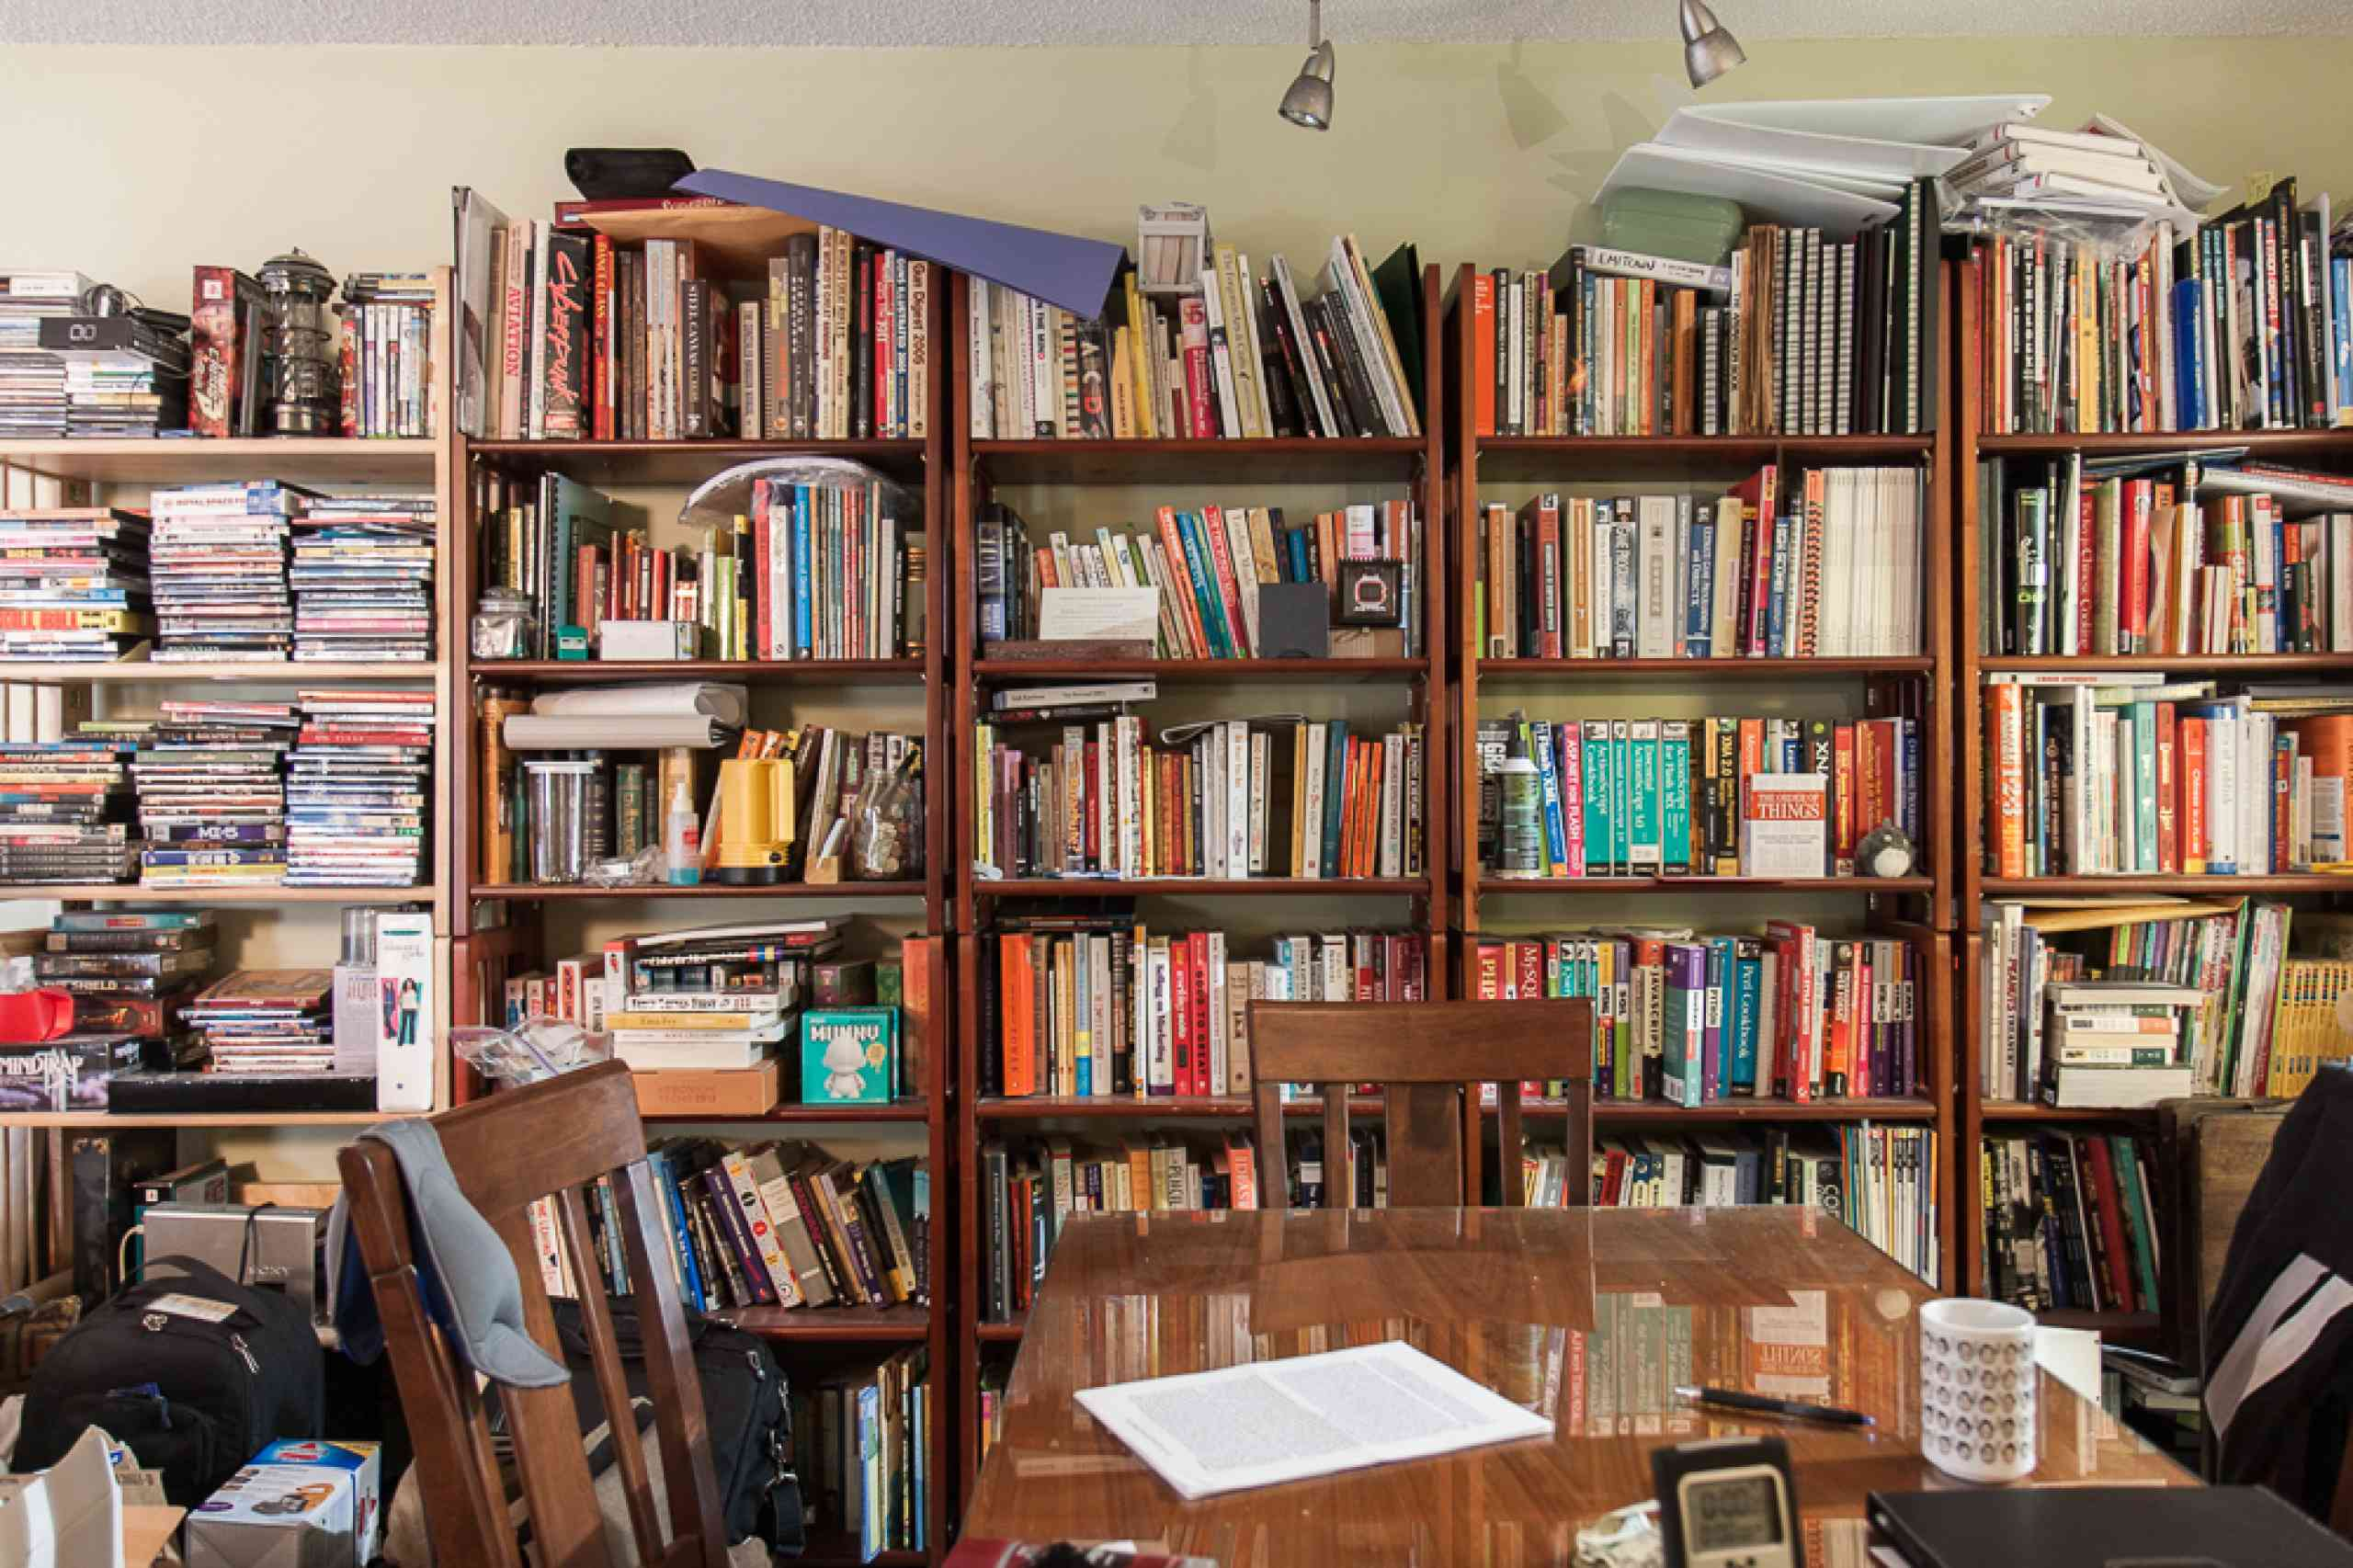 My bookshelves need a makeover